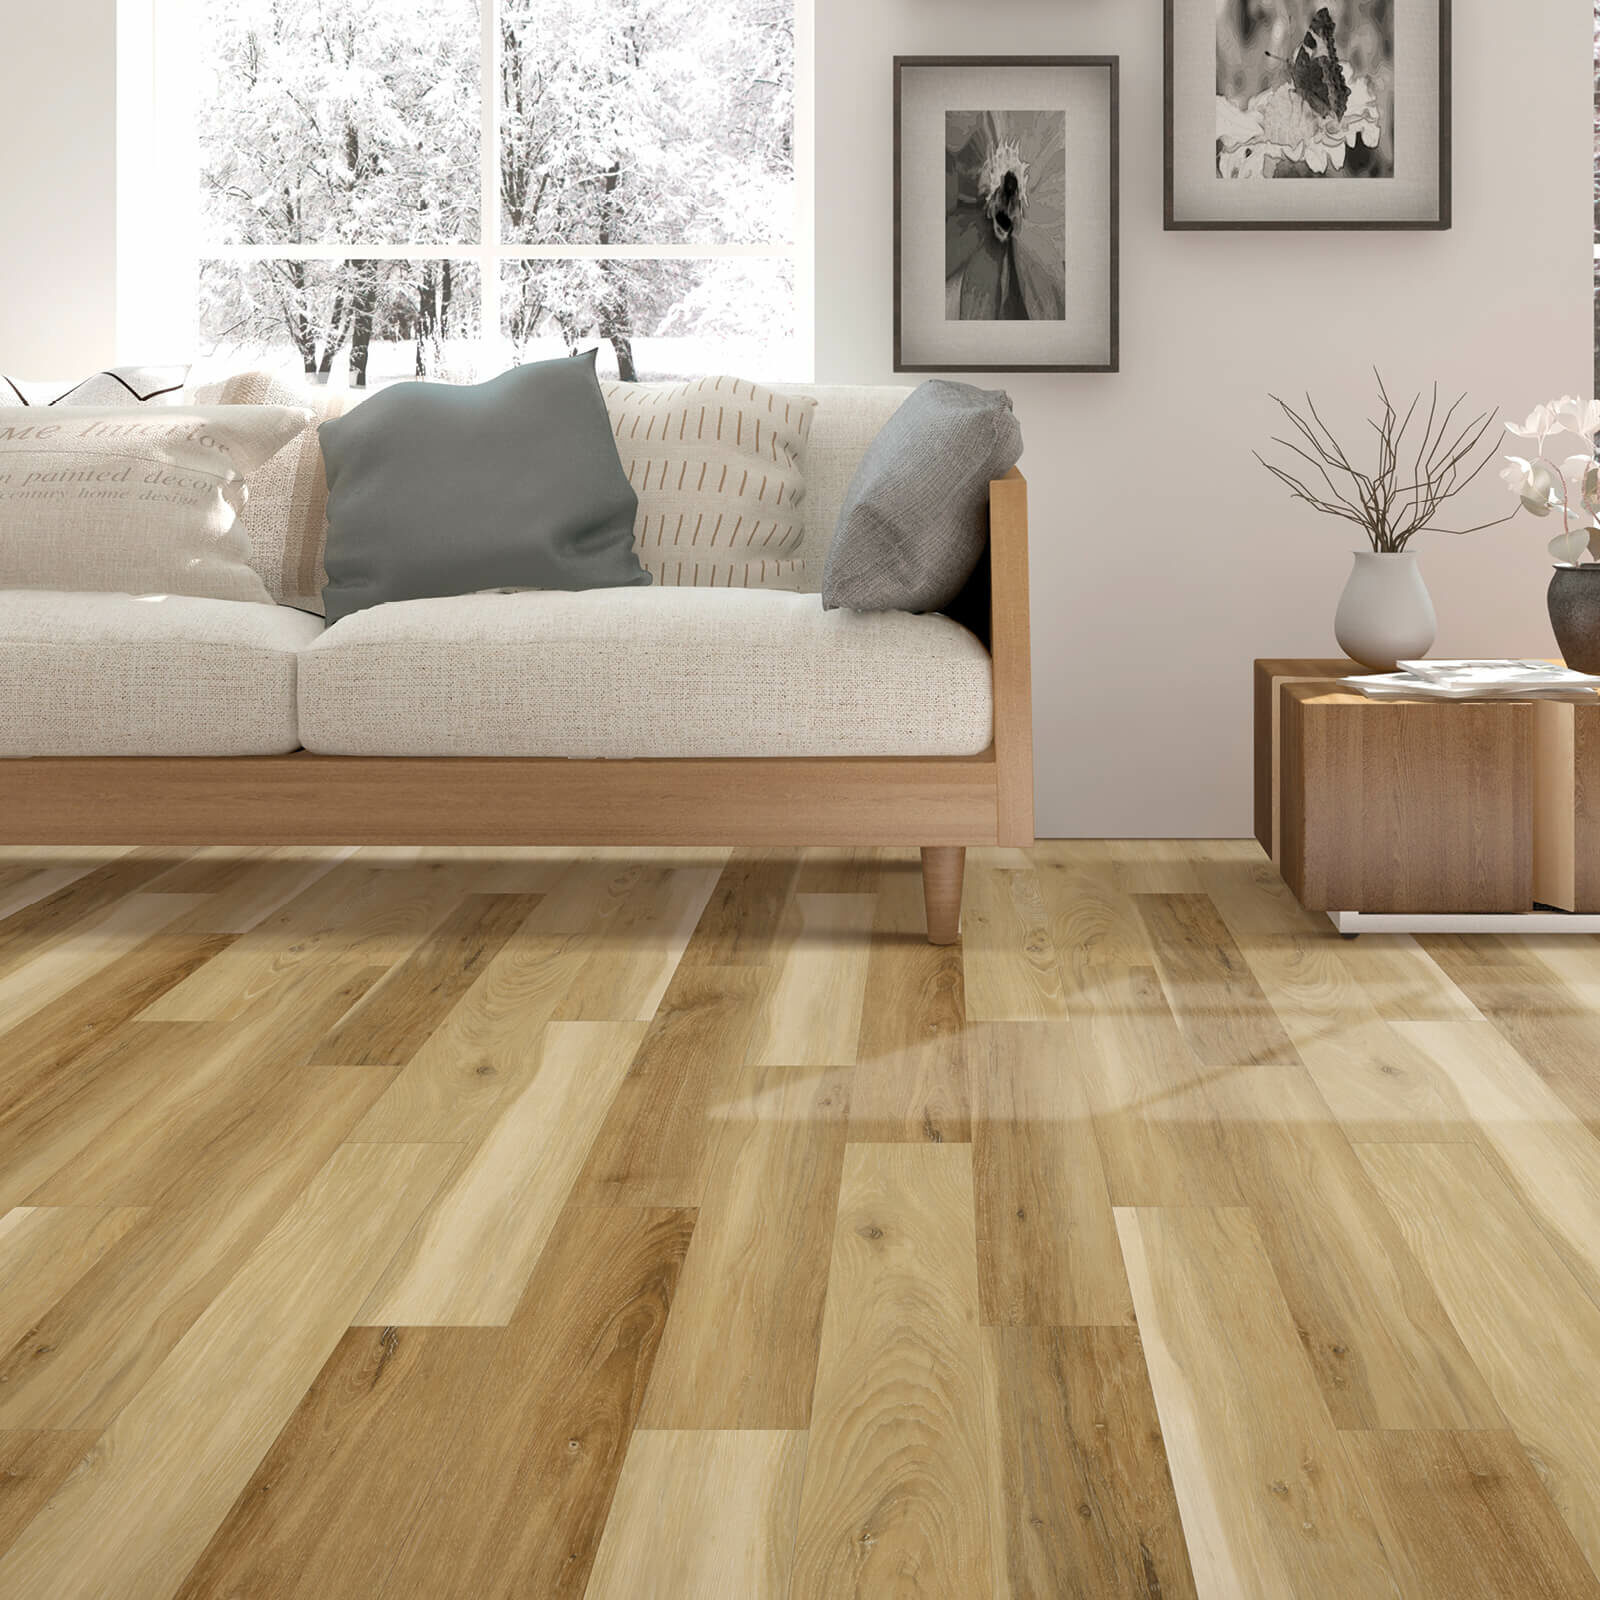 Mohawk laminate flooring | Cherry City Interiors